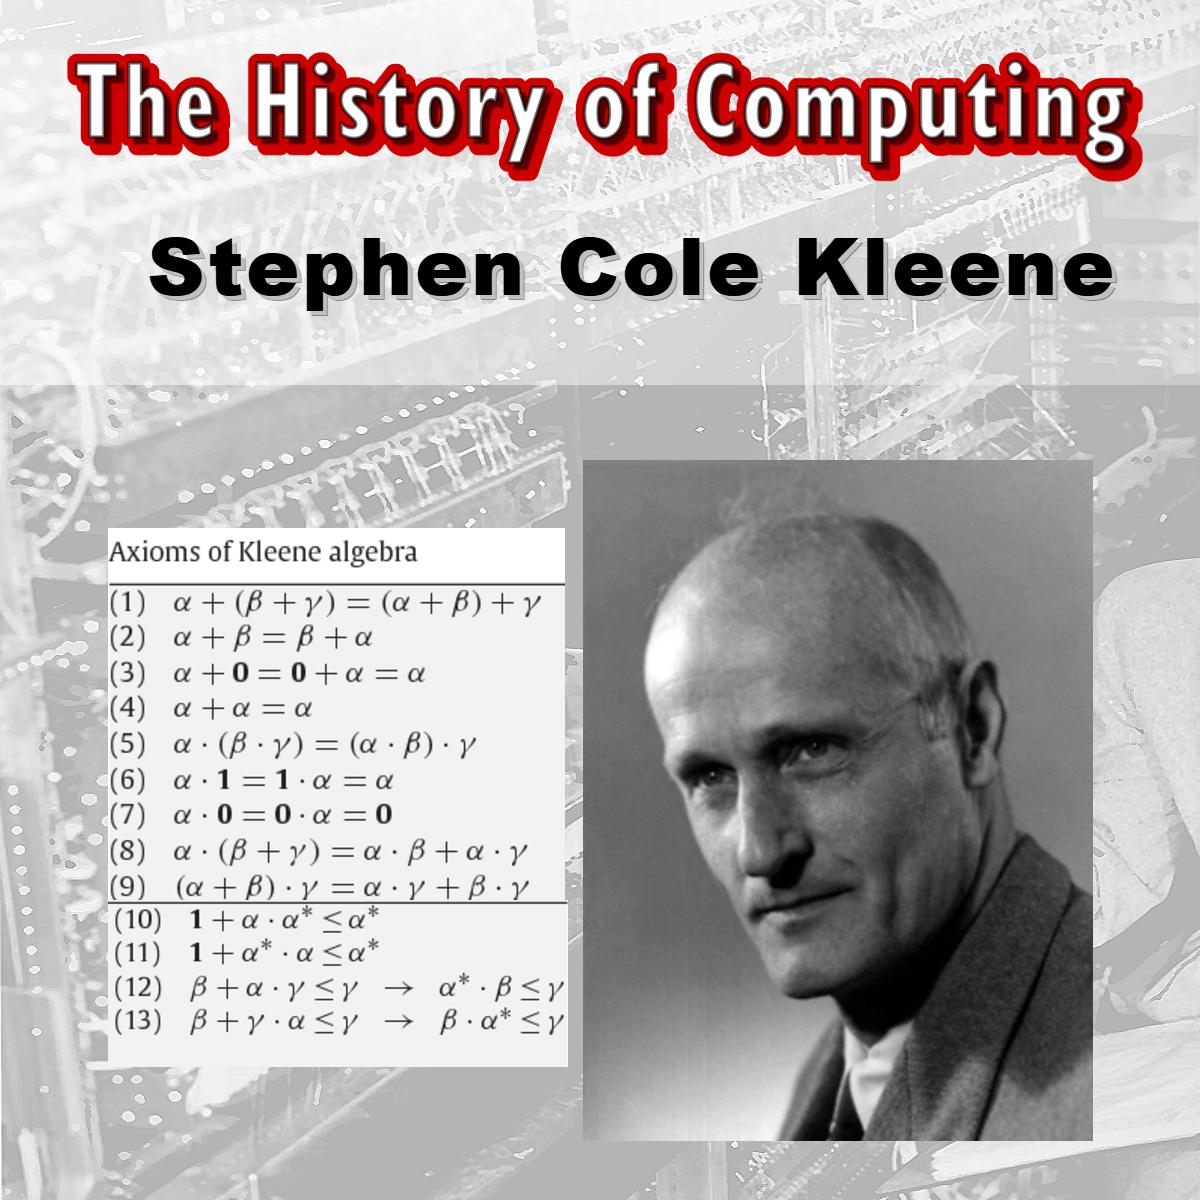 Stephen Cole Kleene